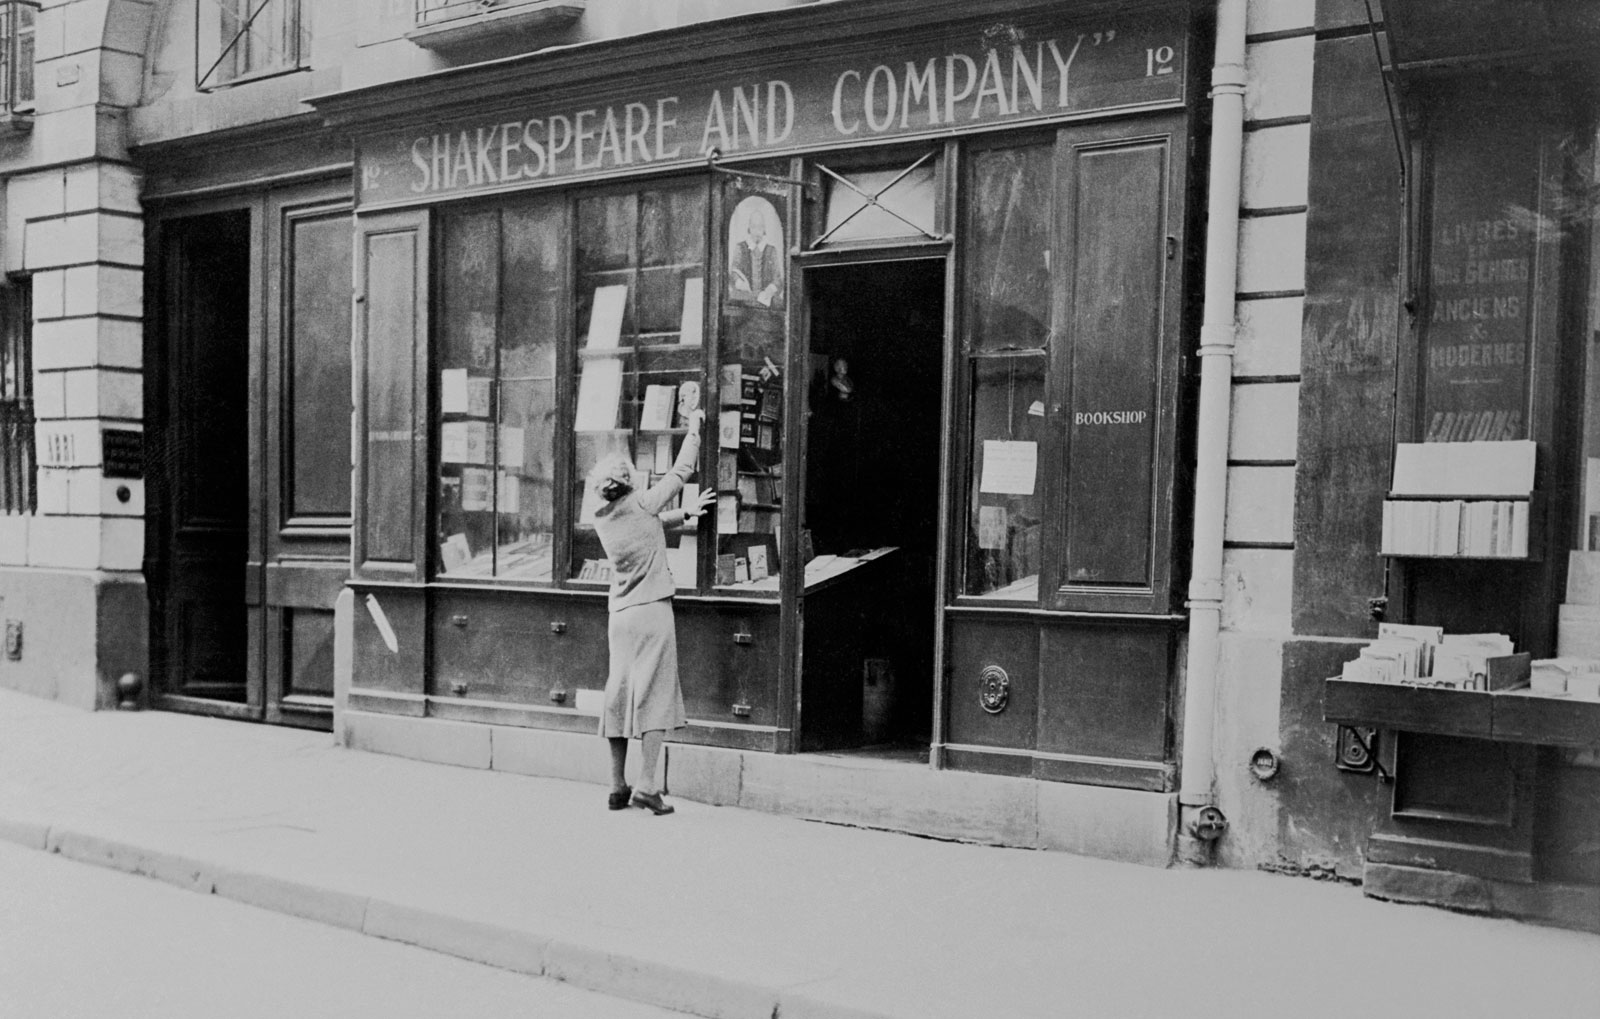 Sylvia Beach in front of her bookshop, Shakespeare and Company, Paris, May 1, 1941